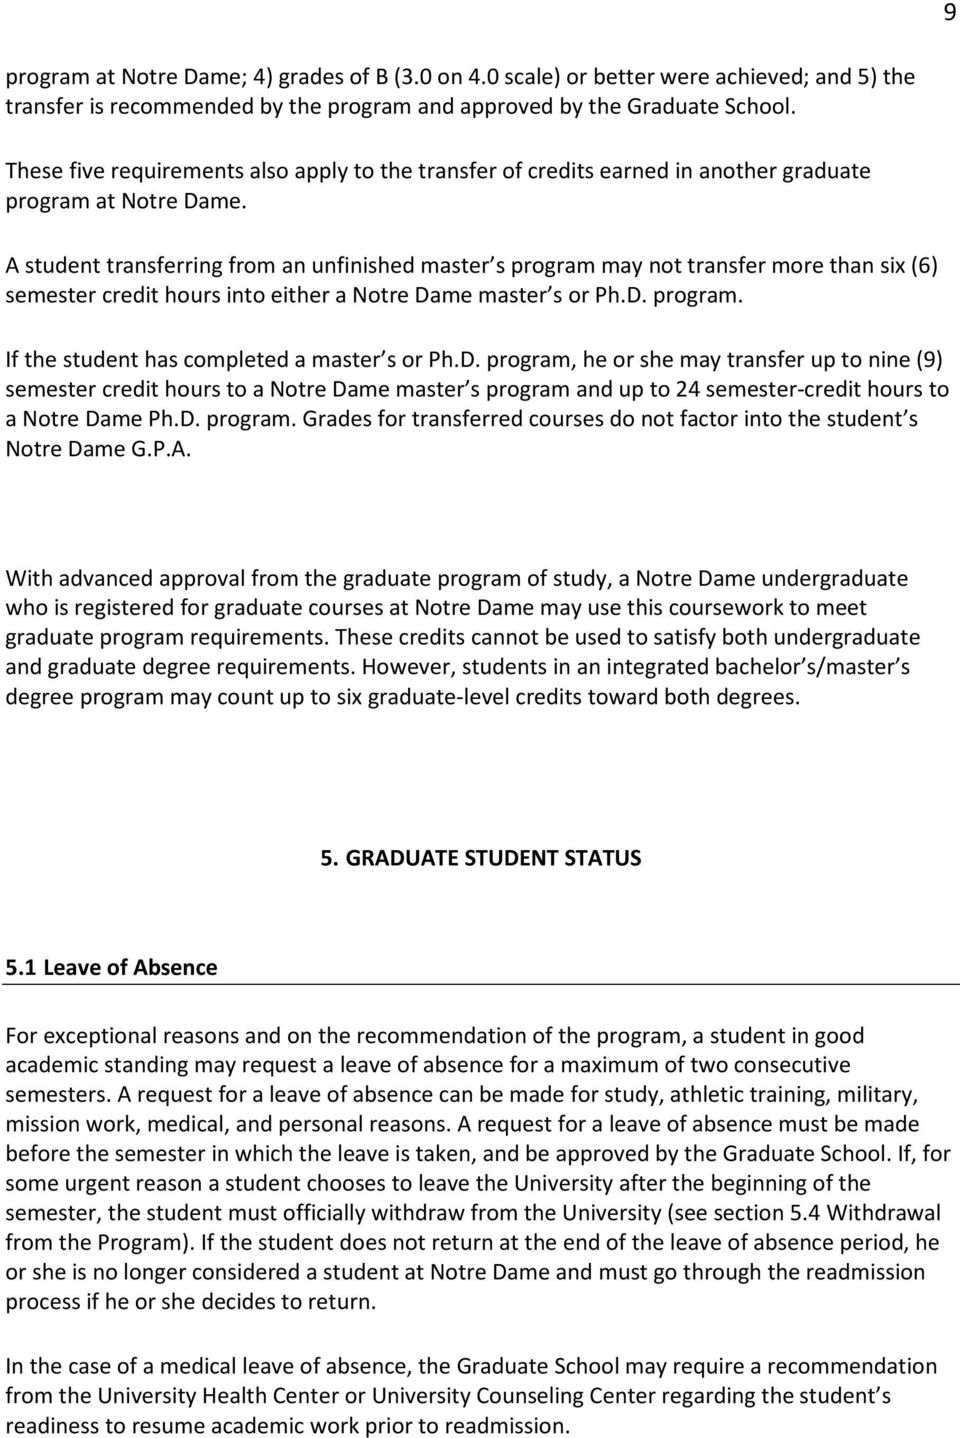 A student transferring from an unfinished master s program may not transfer more than six (6) semester credit hours into either a Notre Dame master s or Ph.D. program. If the student has completed a master s or Ph.